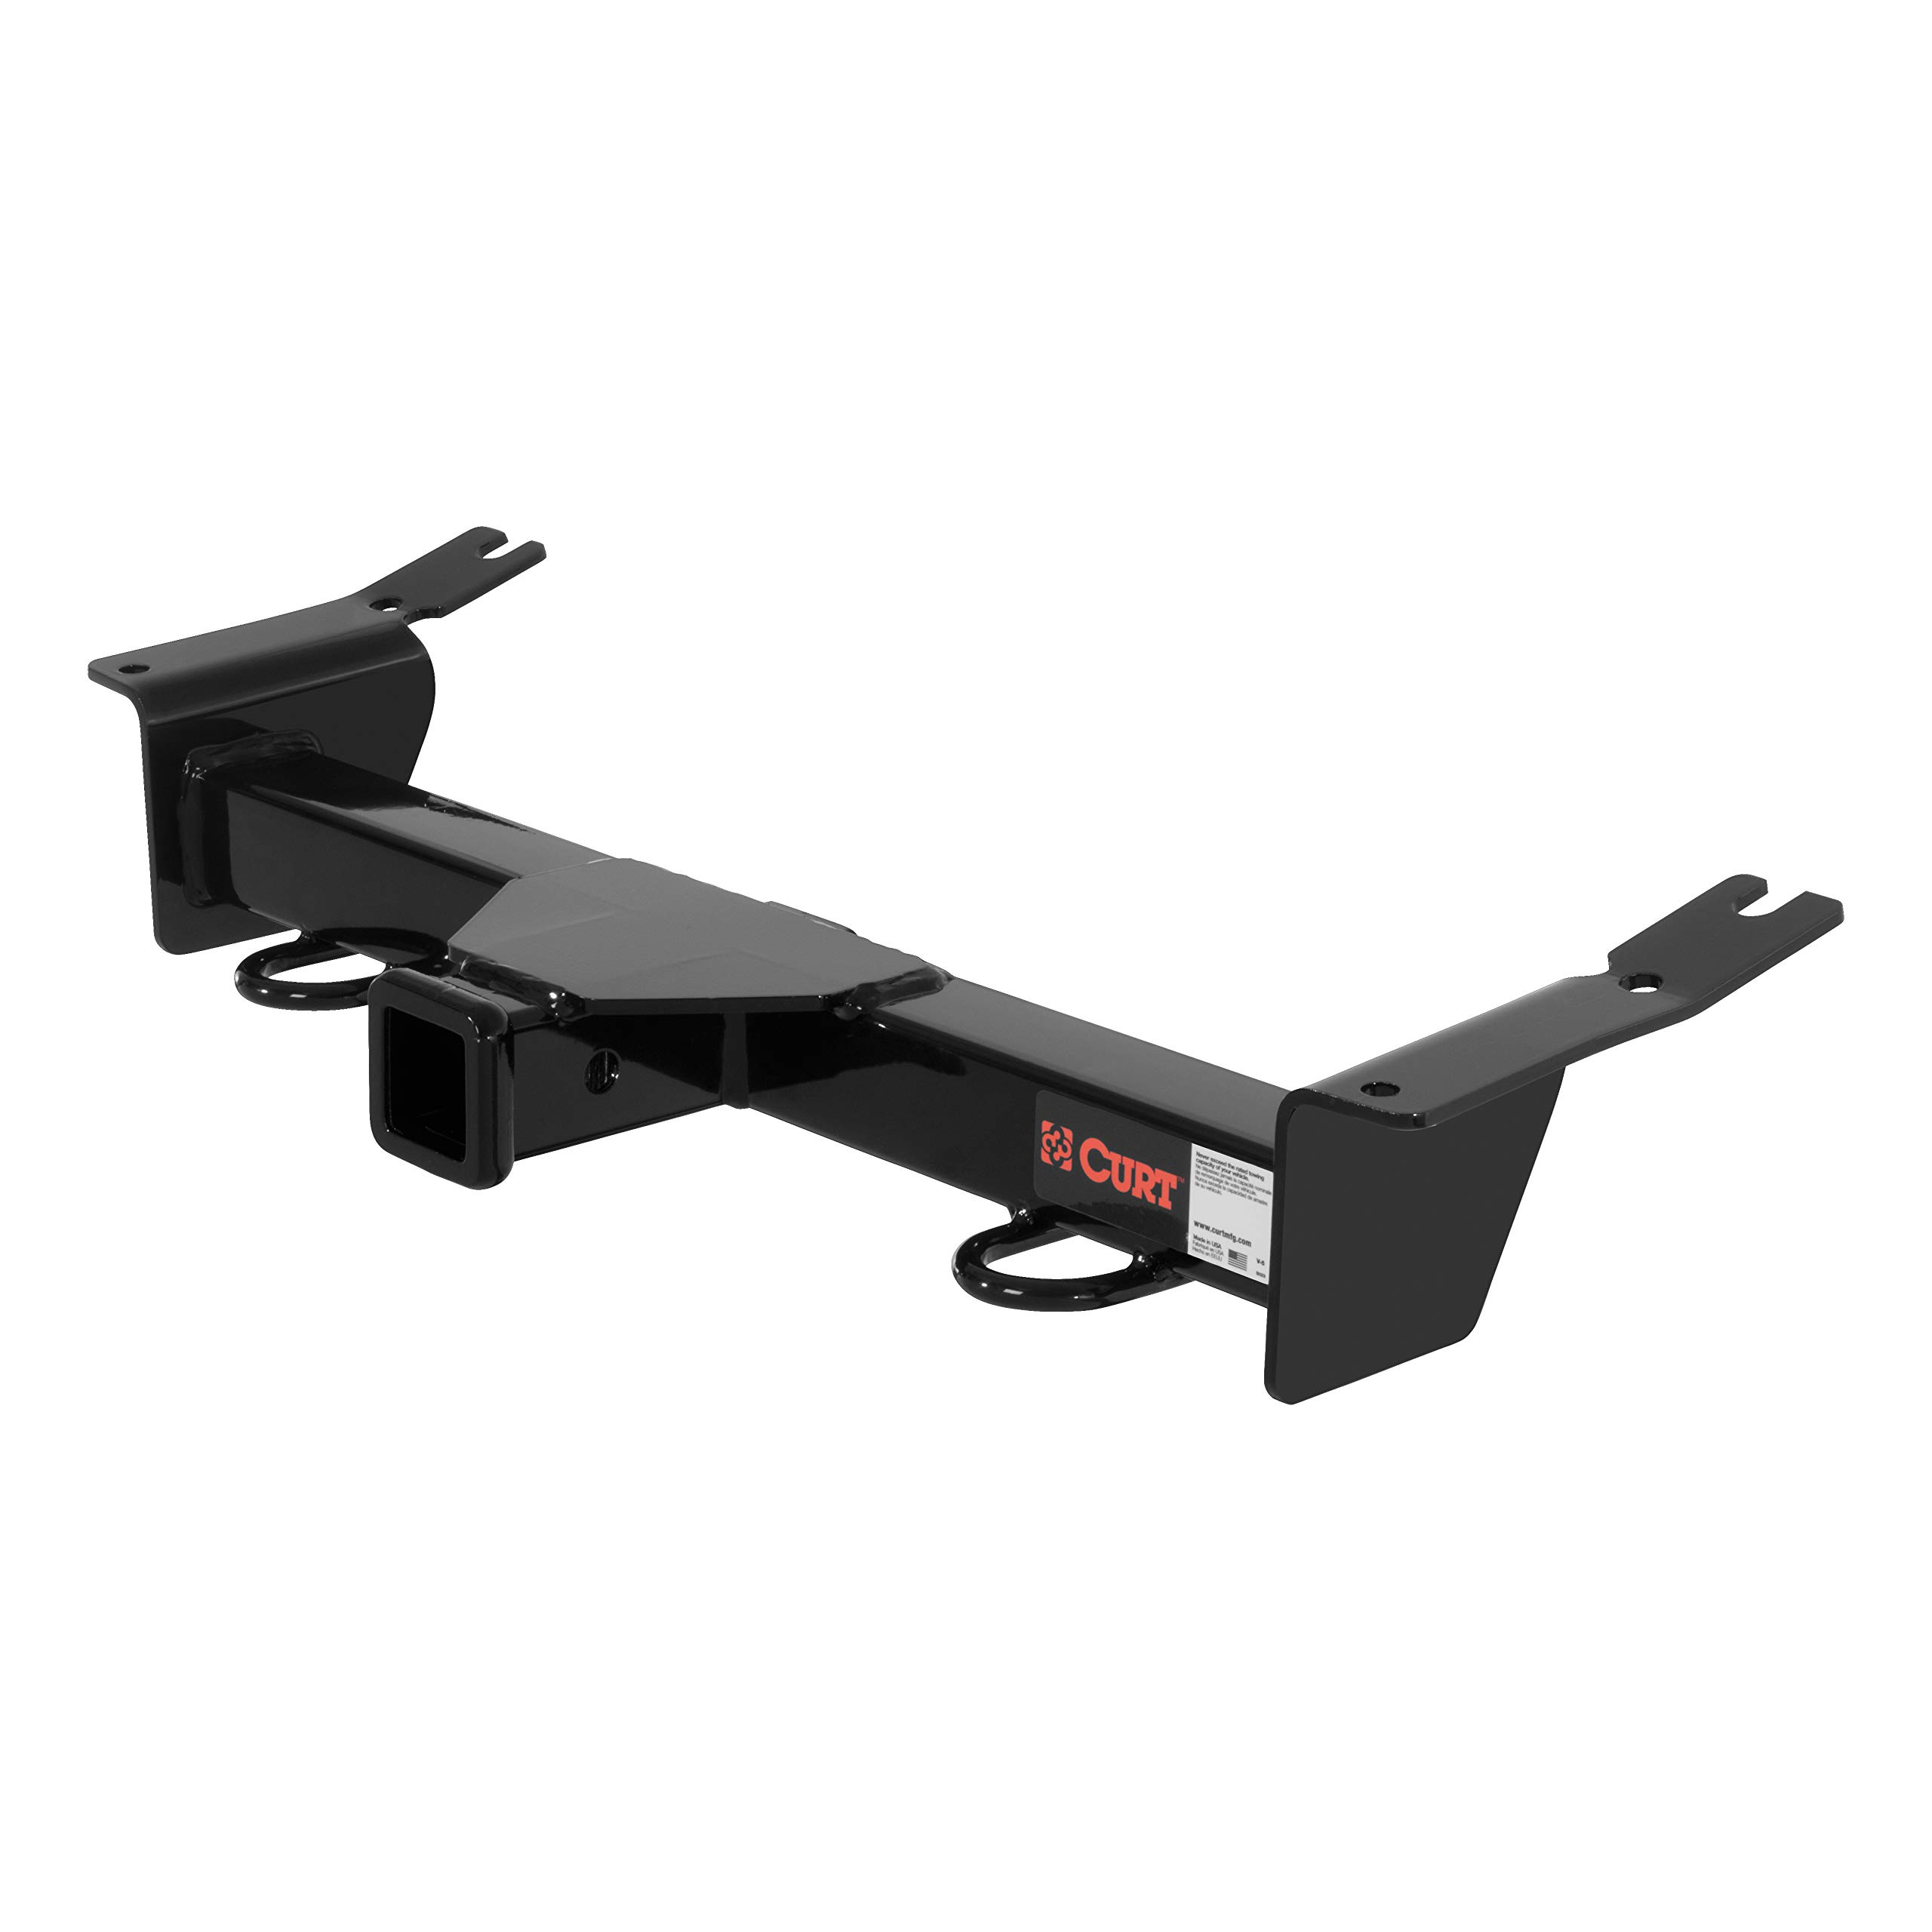 CURT 31084 Front Hitch with 2-Inch Receiver, Fits Select Jeep Cherokee, Comanche, Wagoneer by CURT